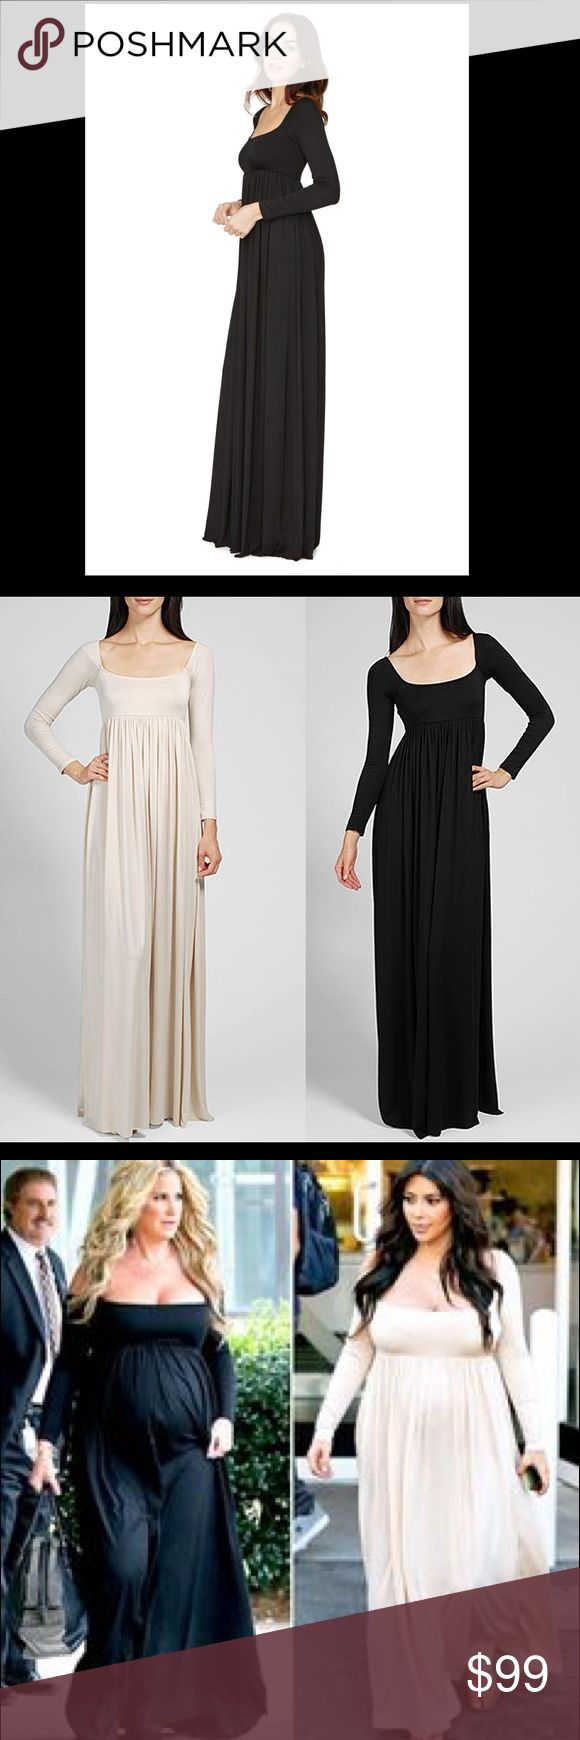 Cream Rachel Pally Isa Dress Can be maxi or maternity. Long and elegant. Comfortable. Can be off shoulder. Worn once Rachel Pally Dresses Maxi